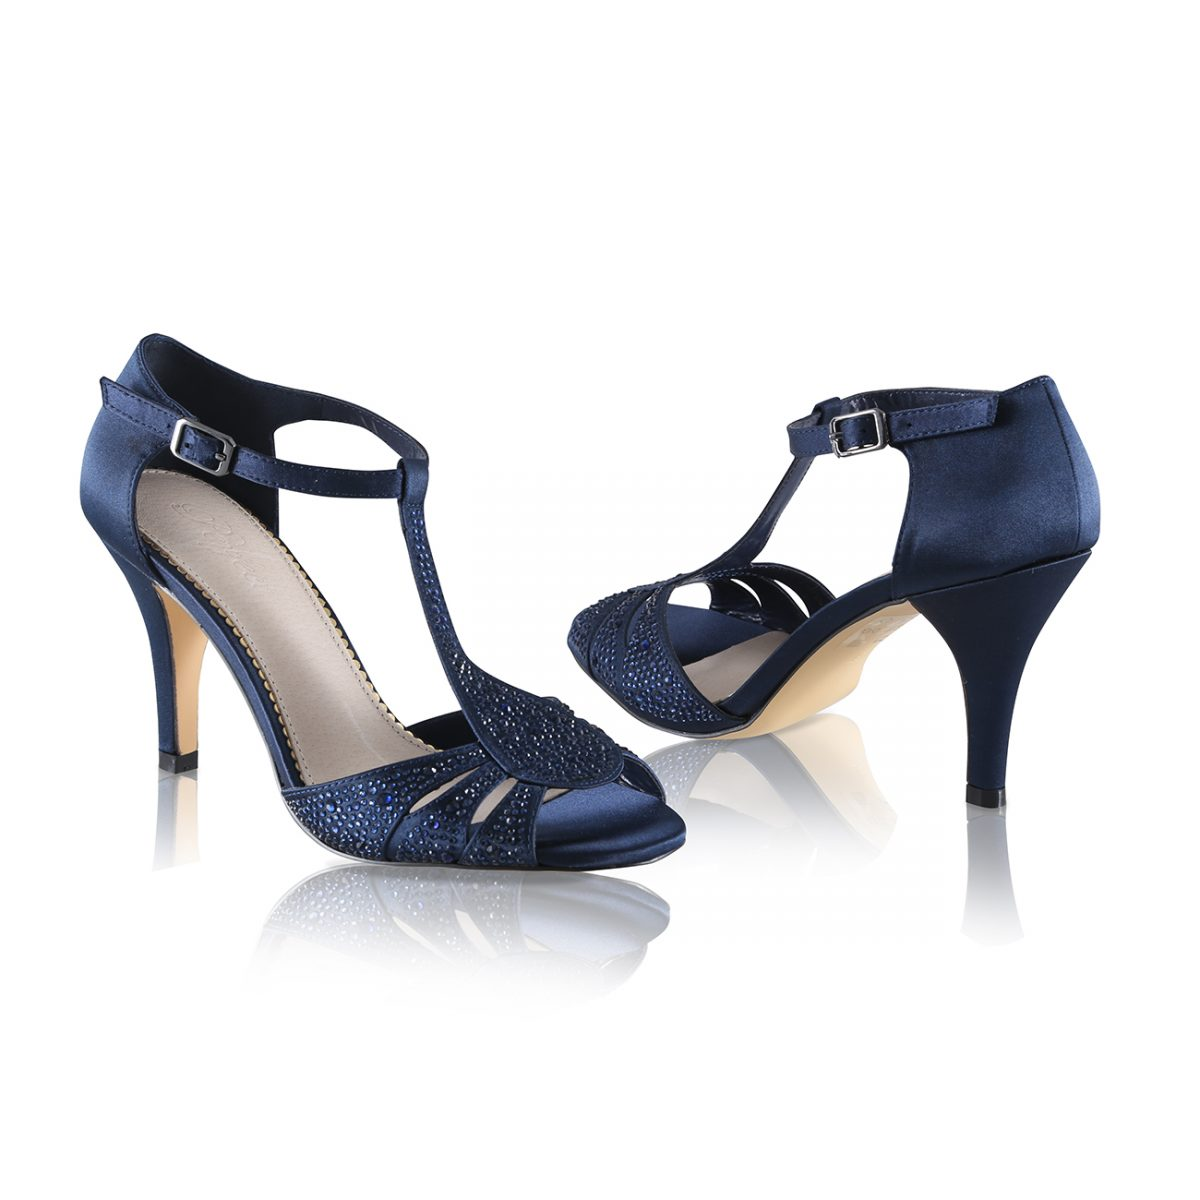 Perfect Bridal Perla Shoes - Navy Satin